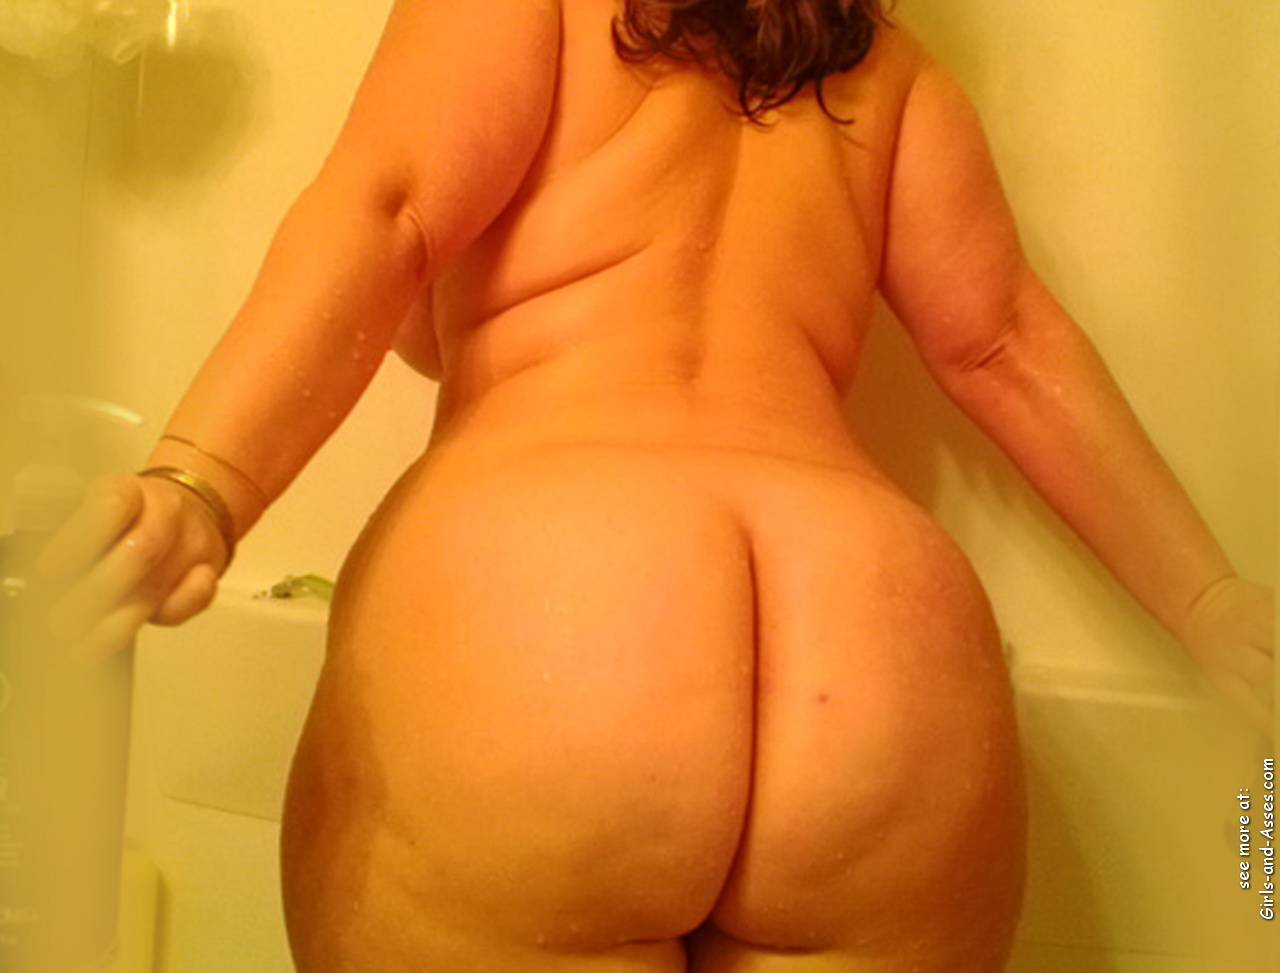 nude girl with massive ass in the bathtub photography 03751